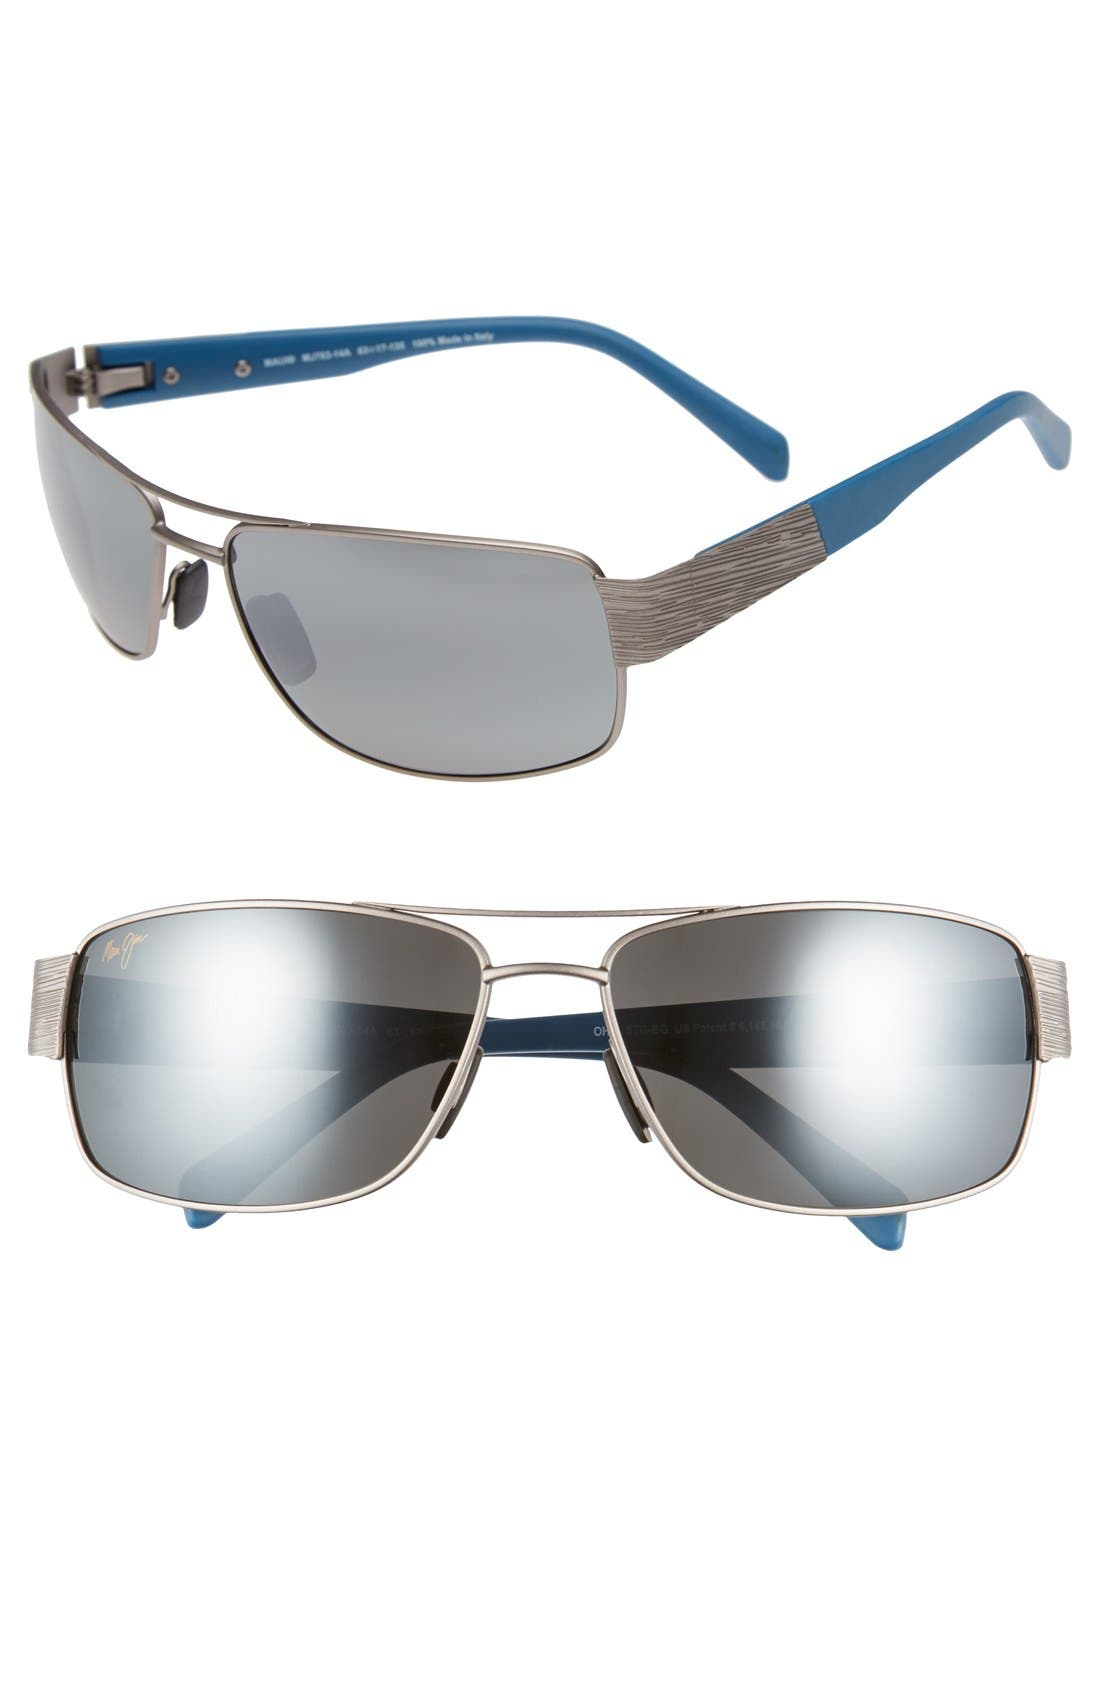 'Ohia' 64mm Polarized Sunglasses,                             Main thumbnail 1, color,                             SATIN GREY WITH BLUE/GREY